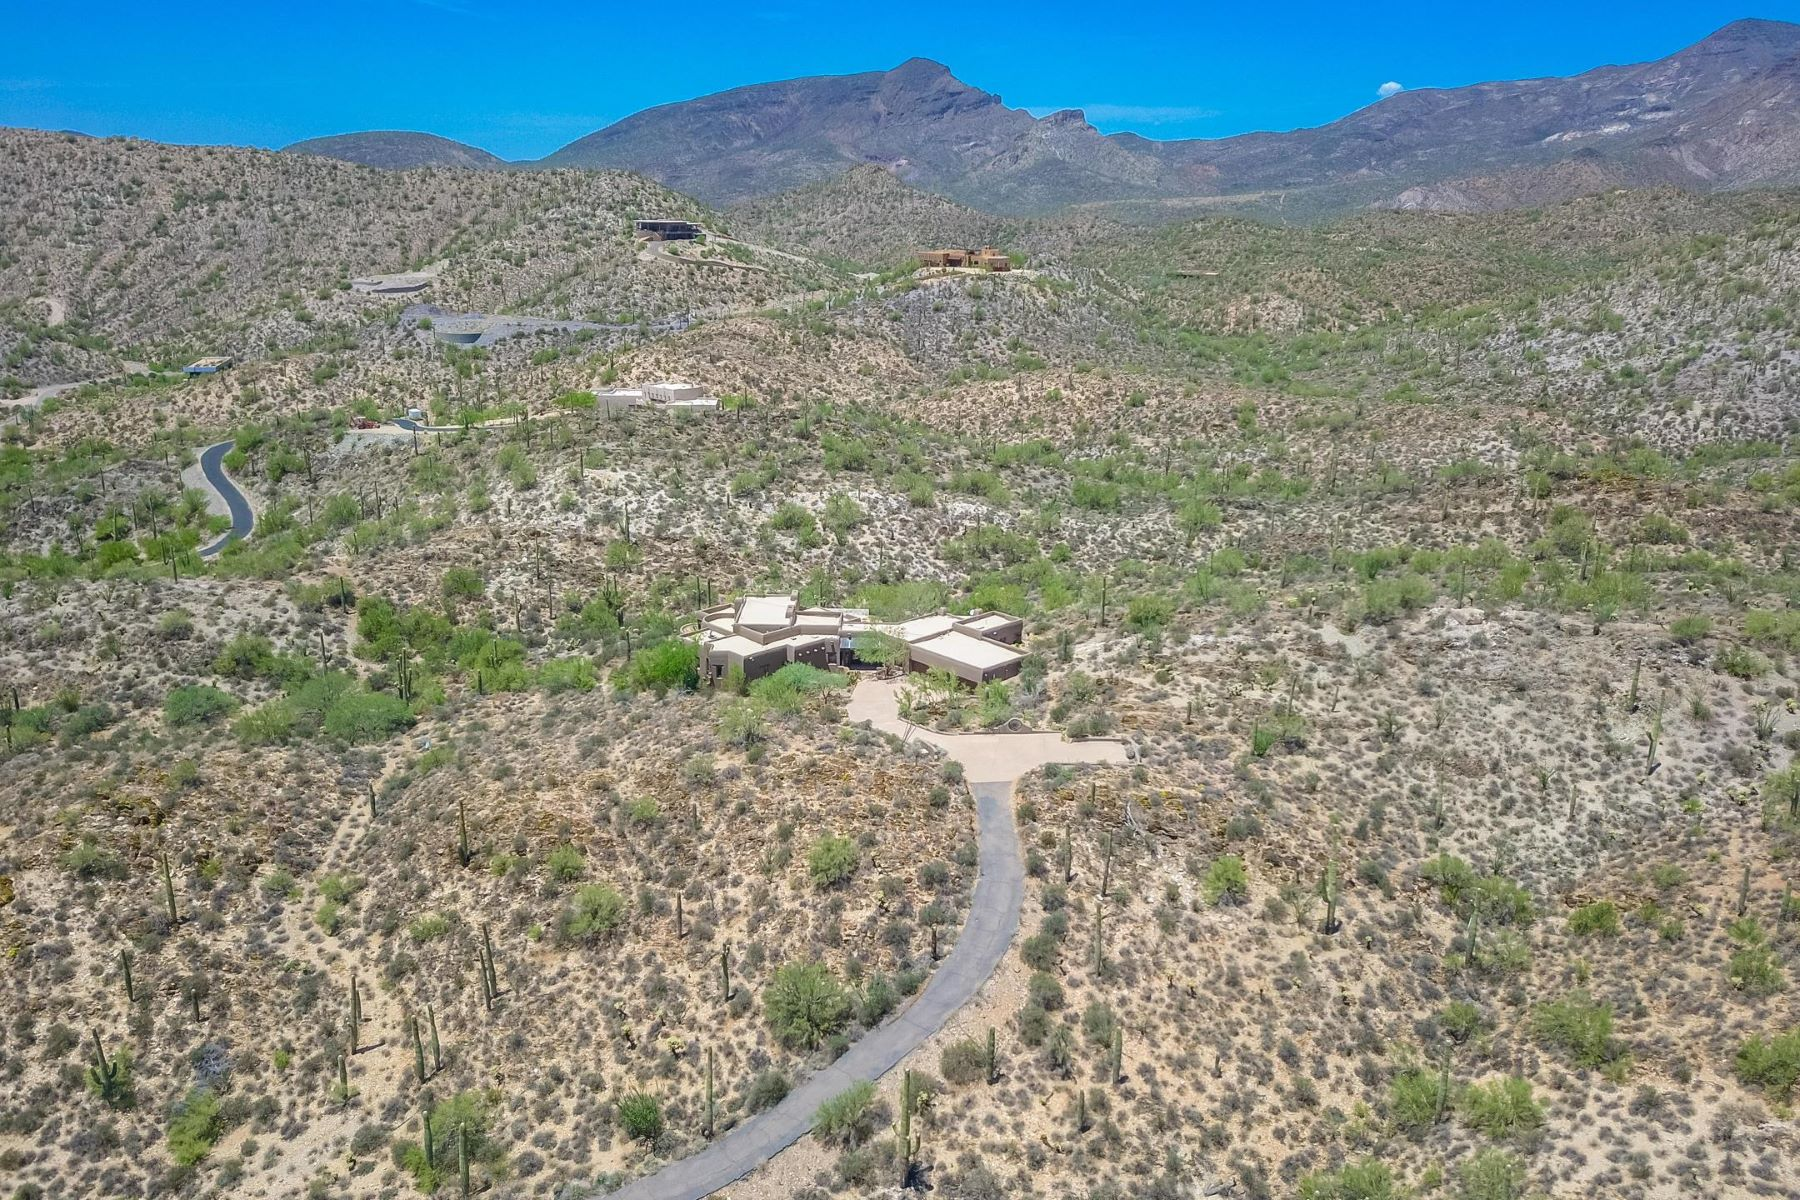 토지 용 매매 에 Spectacular Privately Gated Equestrian Property 43438 N 68TH ST 1, Cave Creek, 아리조나 85331 미국